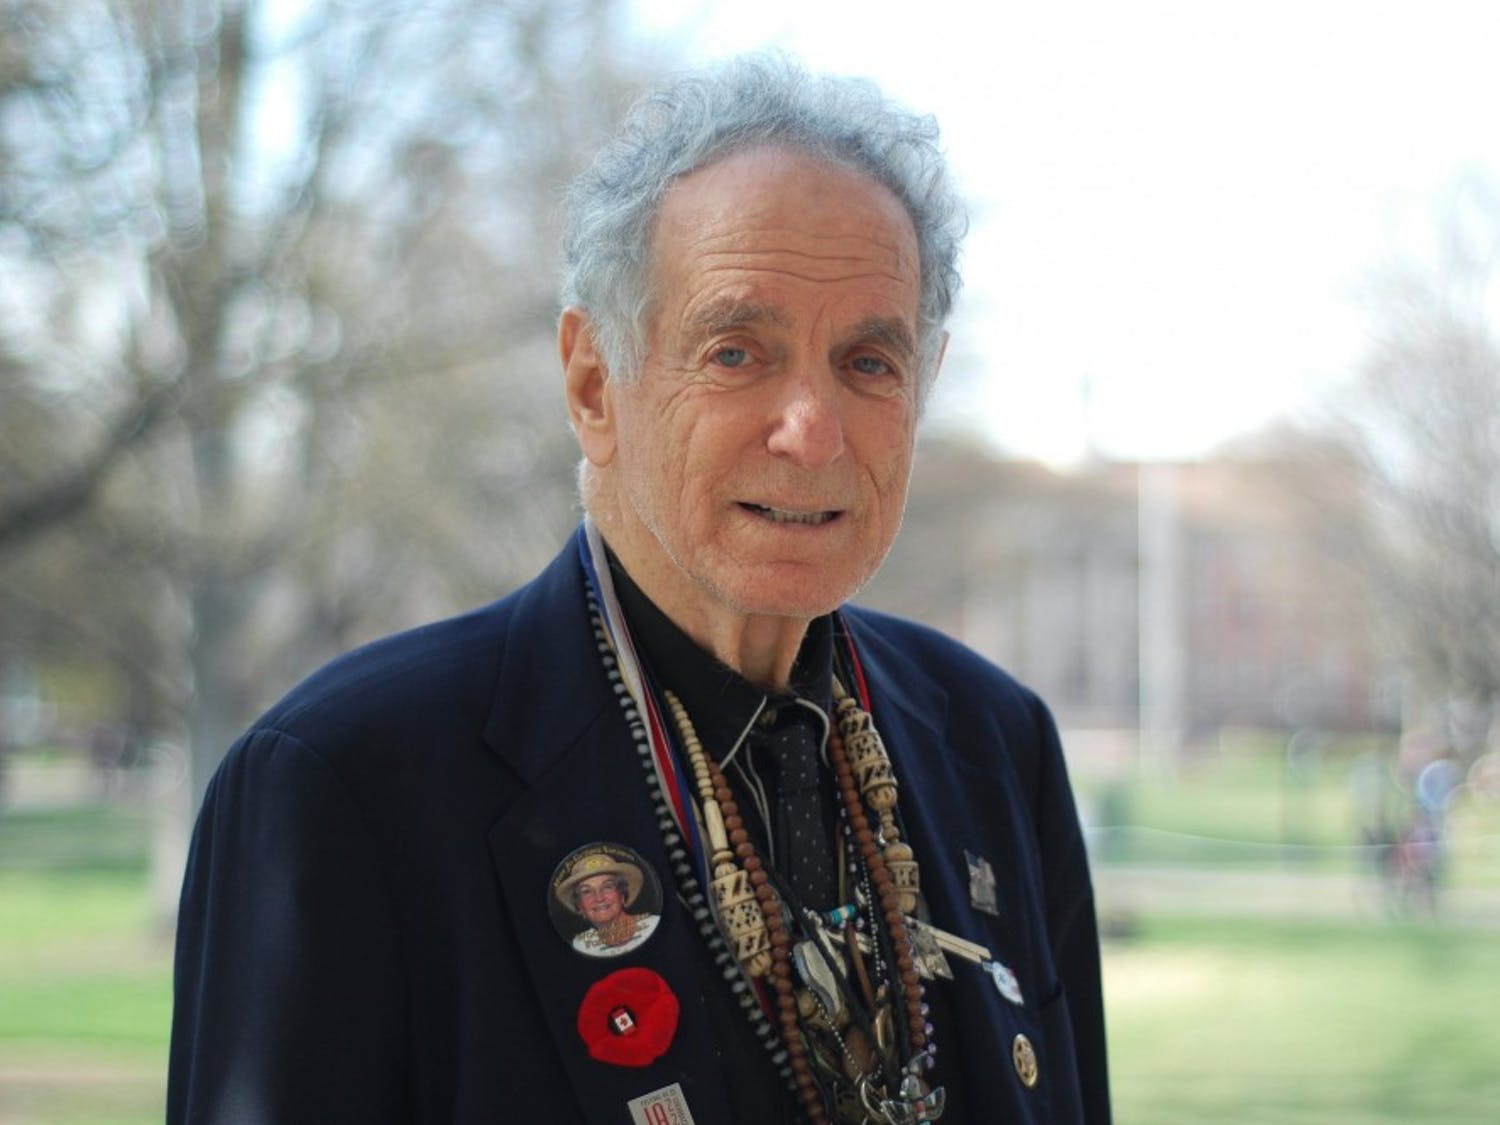 David Amram stands with a necklace made by his daughter from assorted trinkets and collectibles he has be given and found over the years. Amram has spent his life doing many types of things, most notably his musical career with multiple instruments.